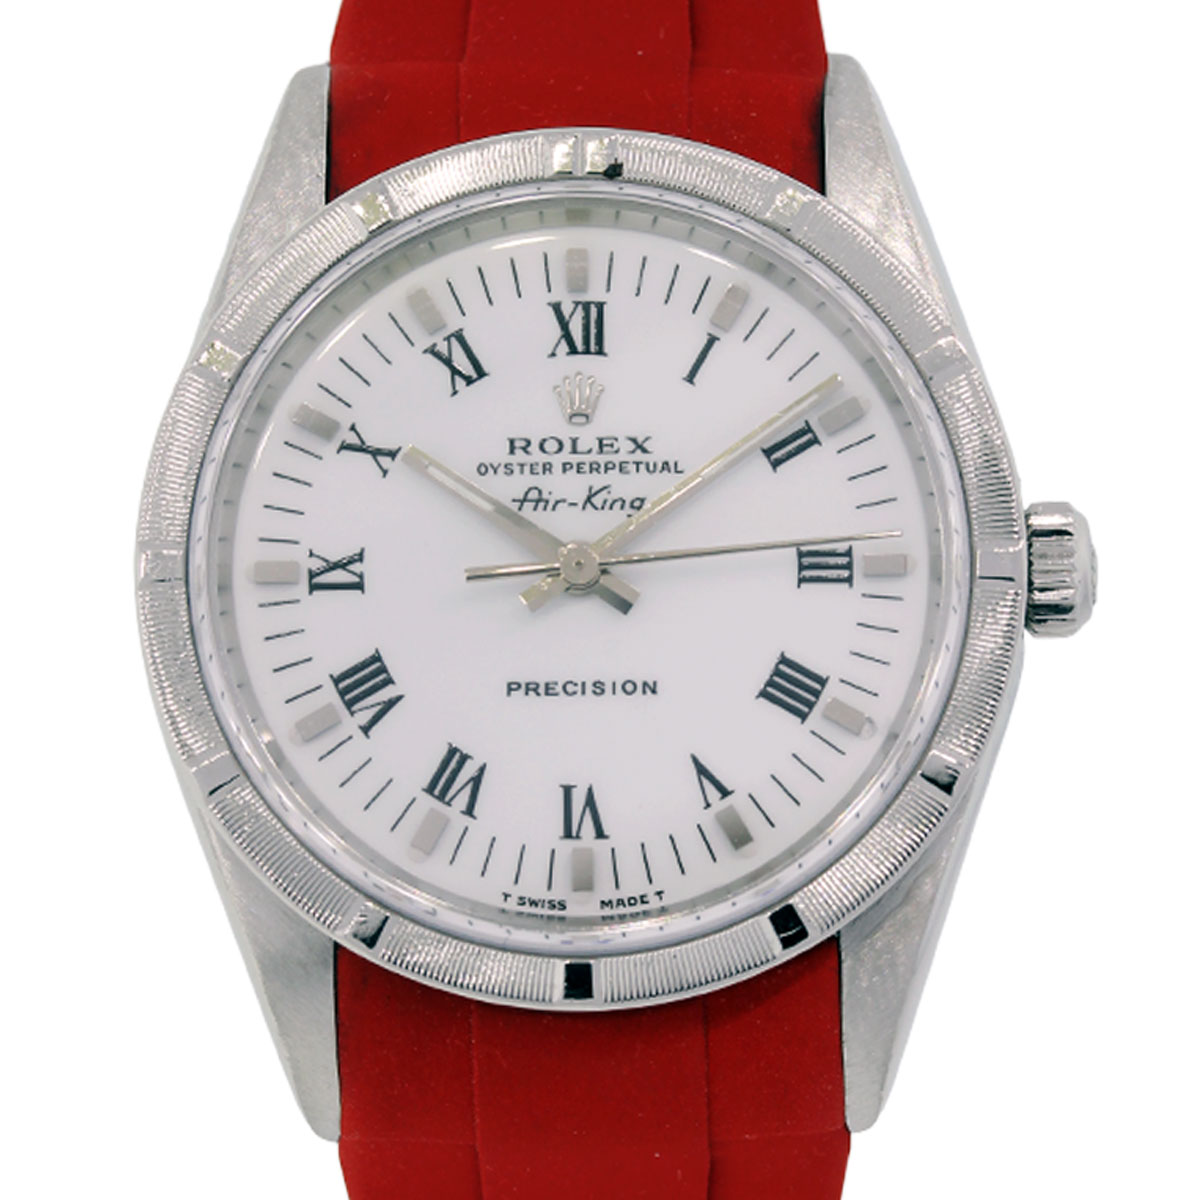 Rolex 14010 air king steel on red rubber strap watch for Rolex air king